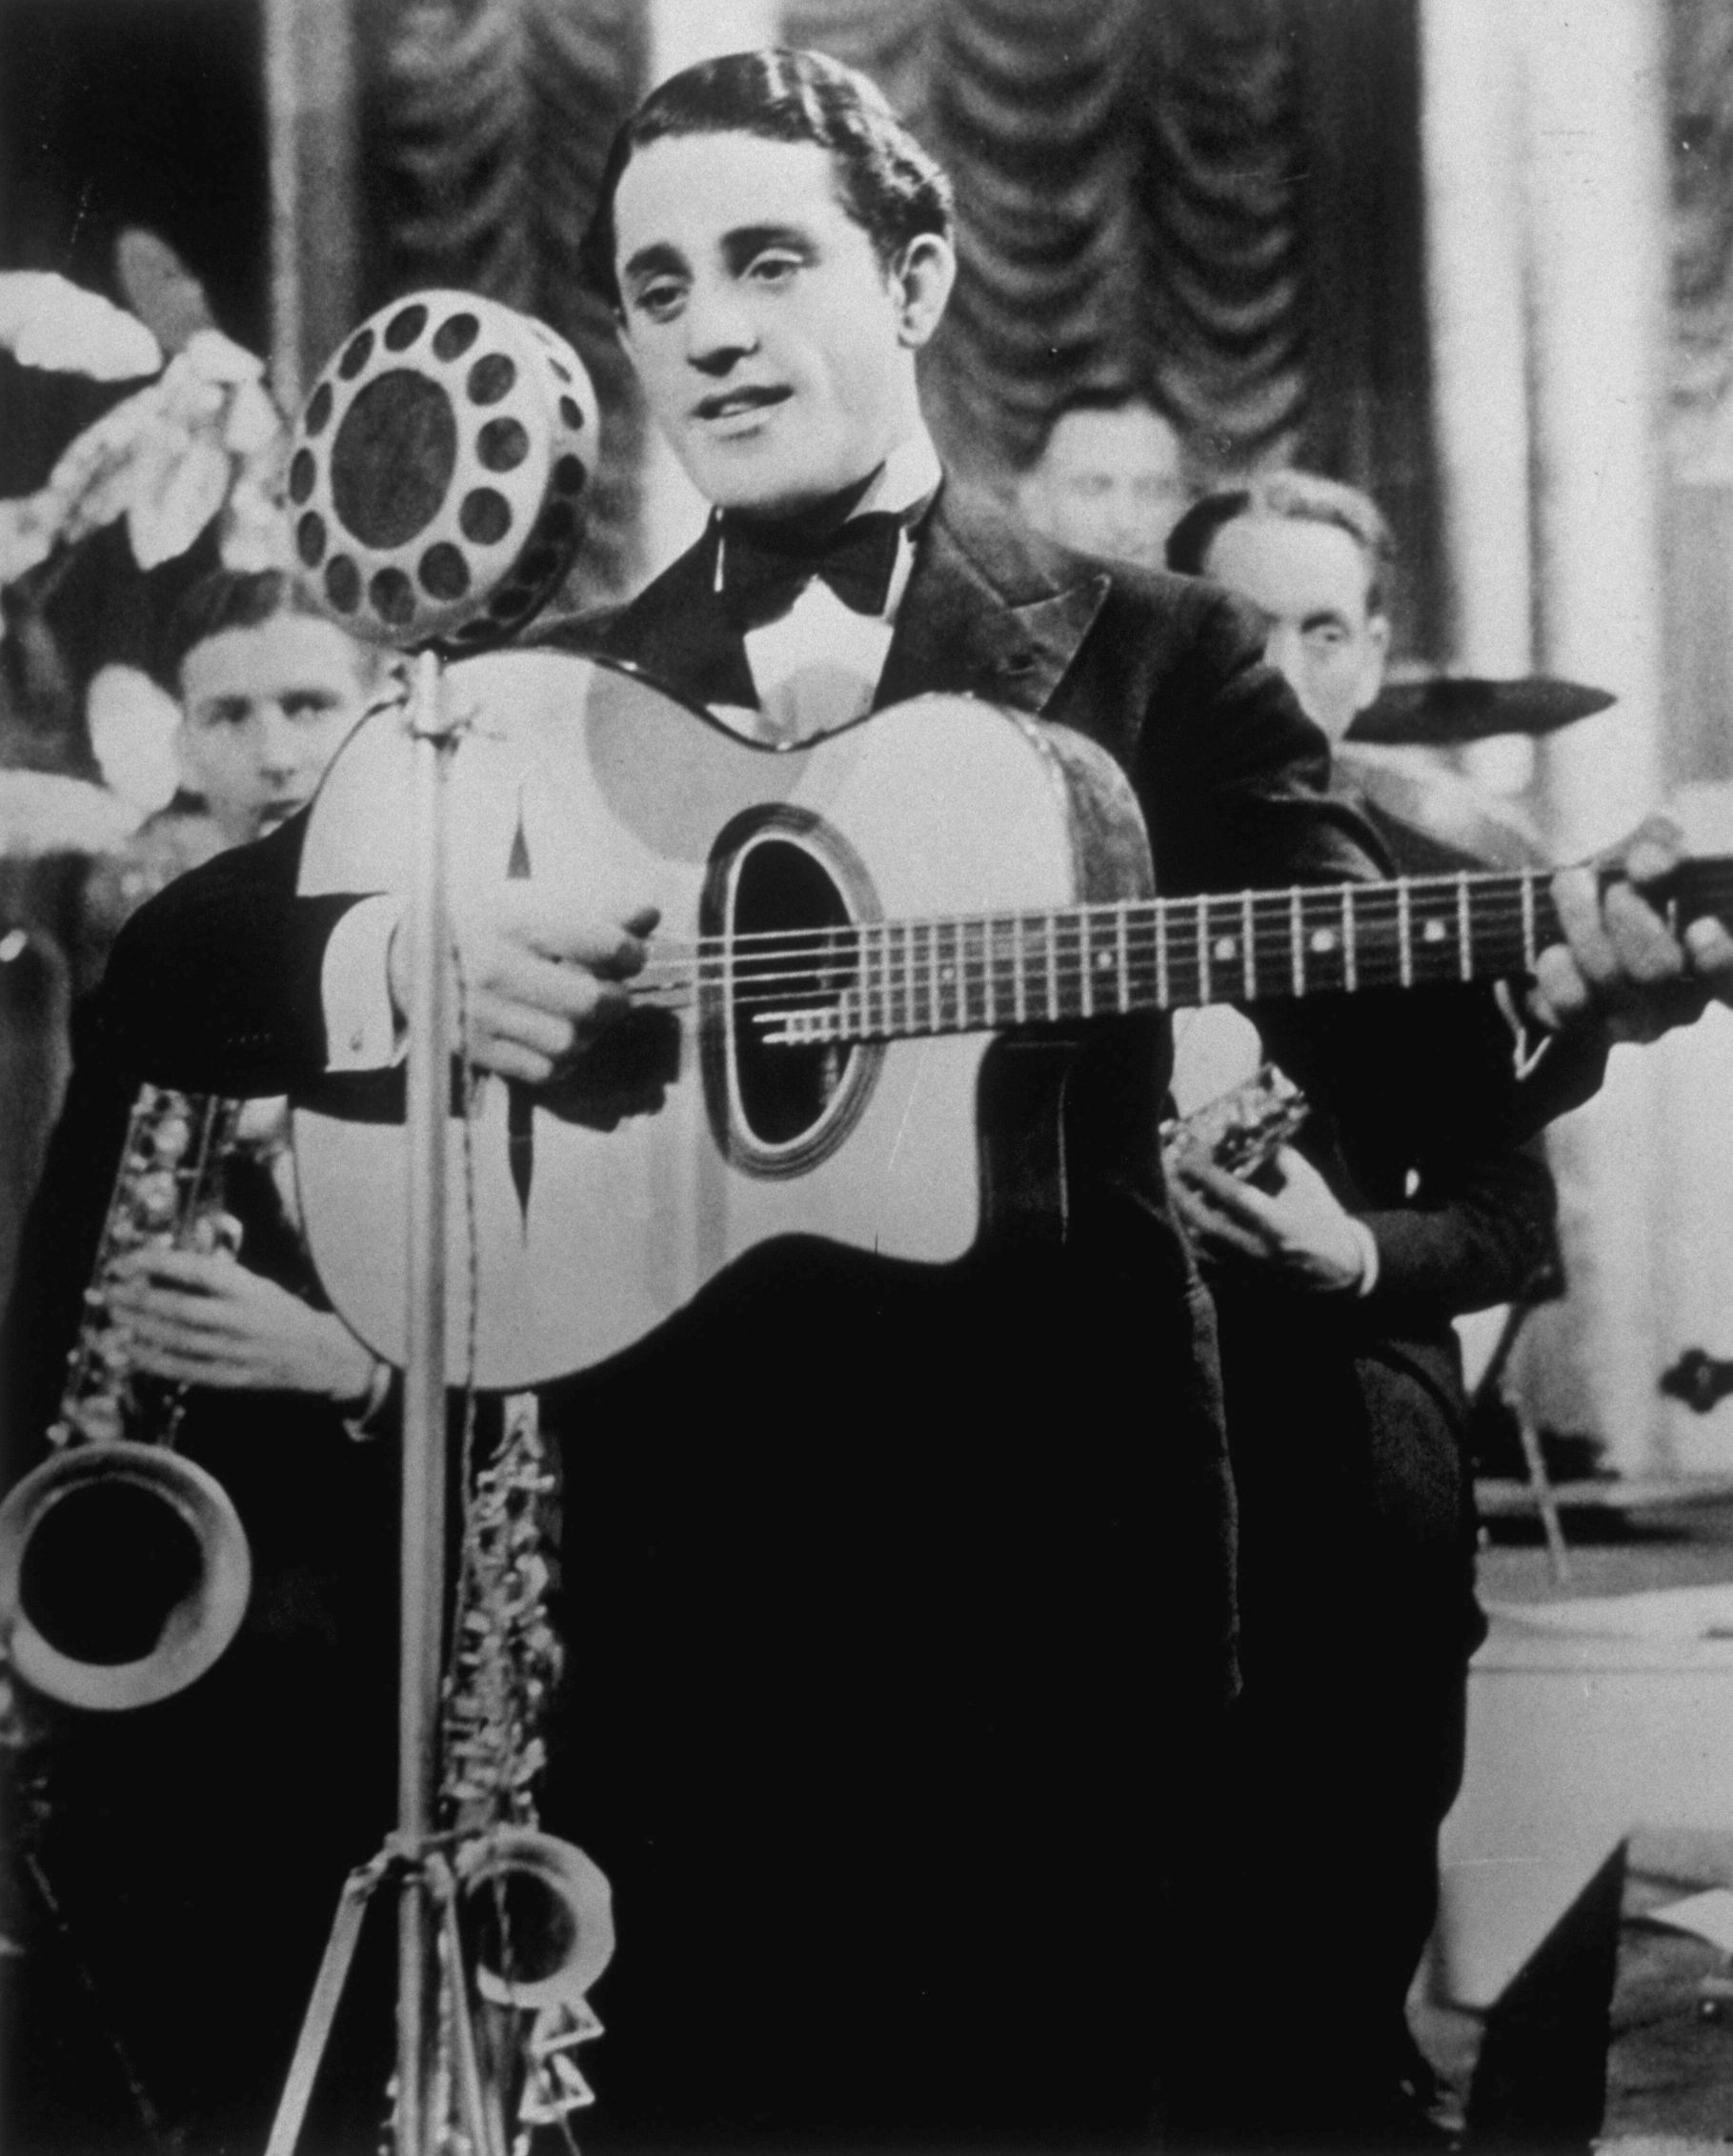 Al Bowlly in 1935 (Photo by Hulton Archive/Getty Images)